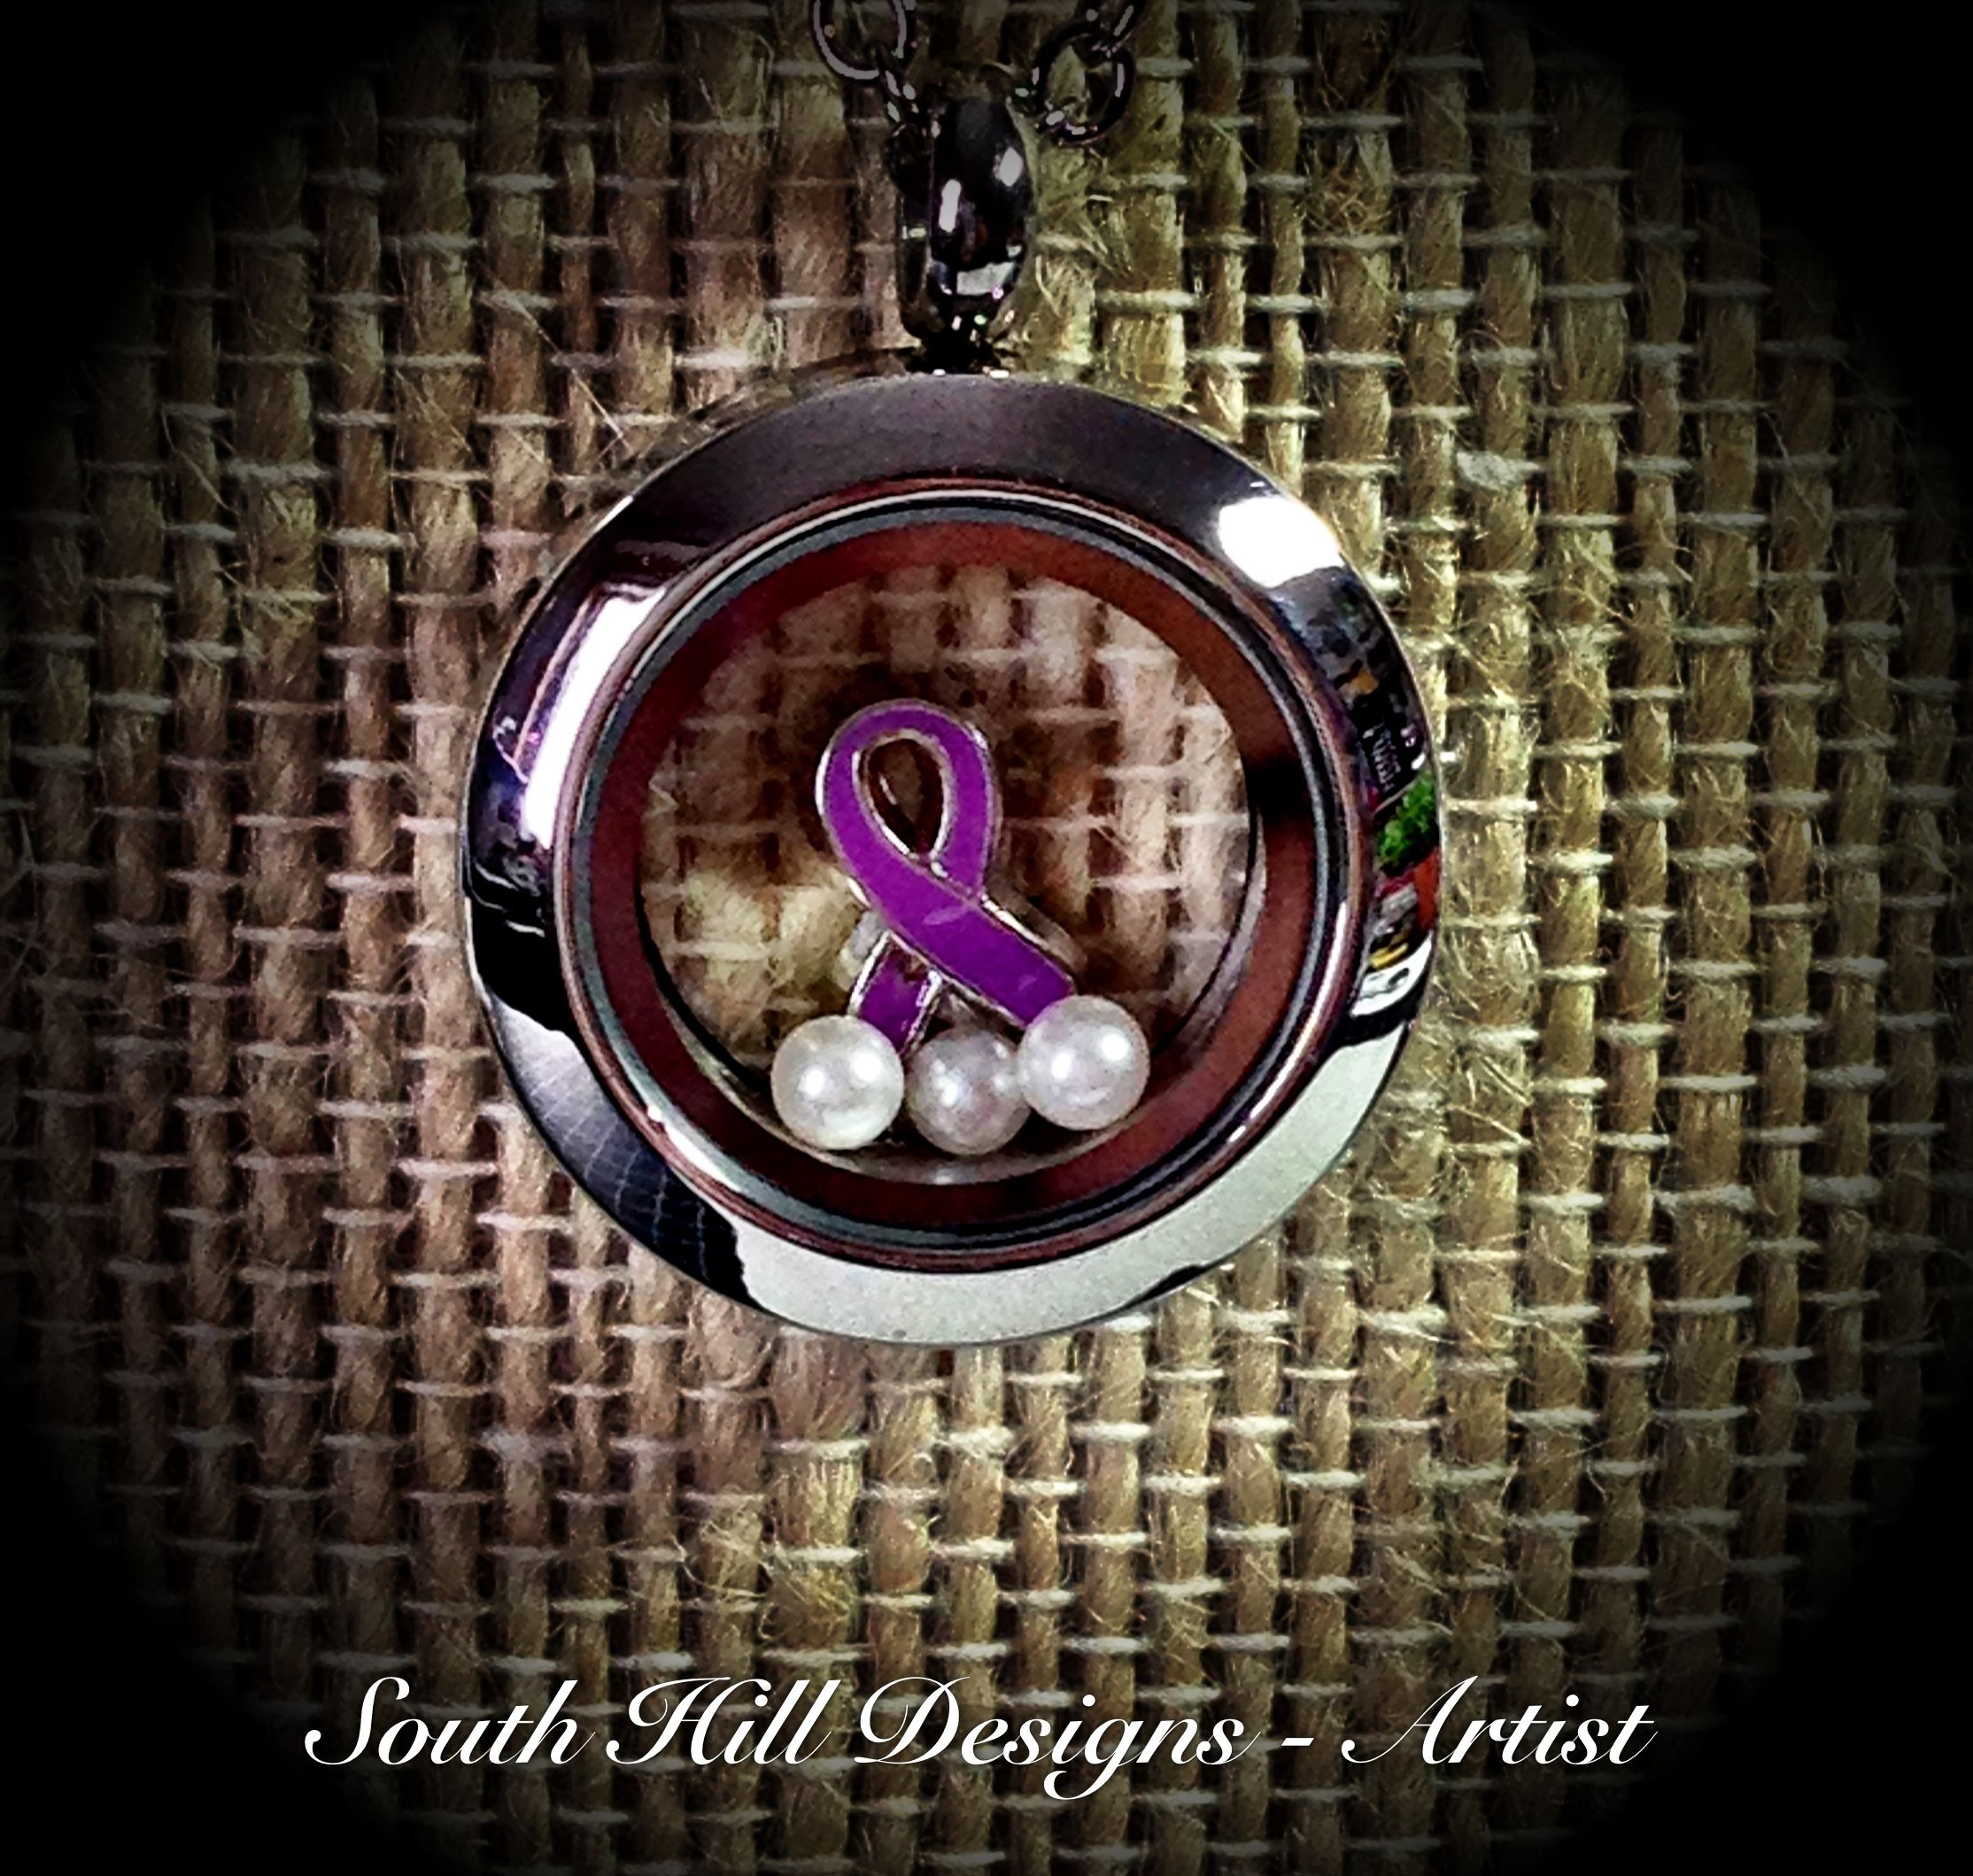 magnetic ribbon my pin for inch insert bracelet necklace changeable button jewelry purple on awareness pic grandma pendant alzheimer etsy